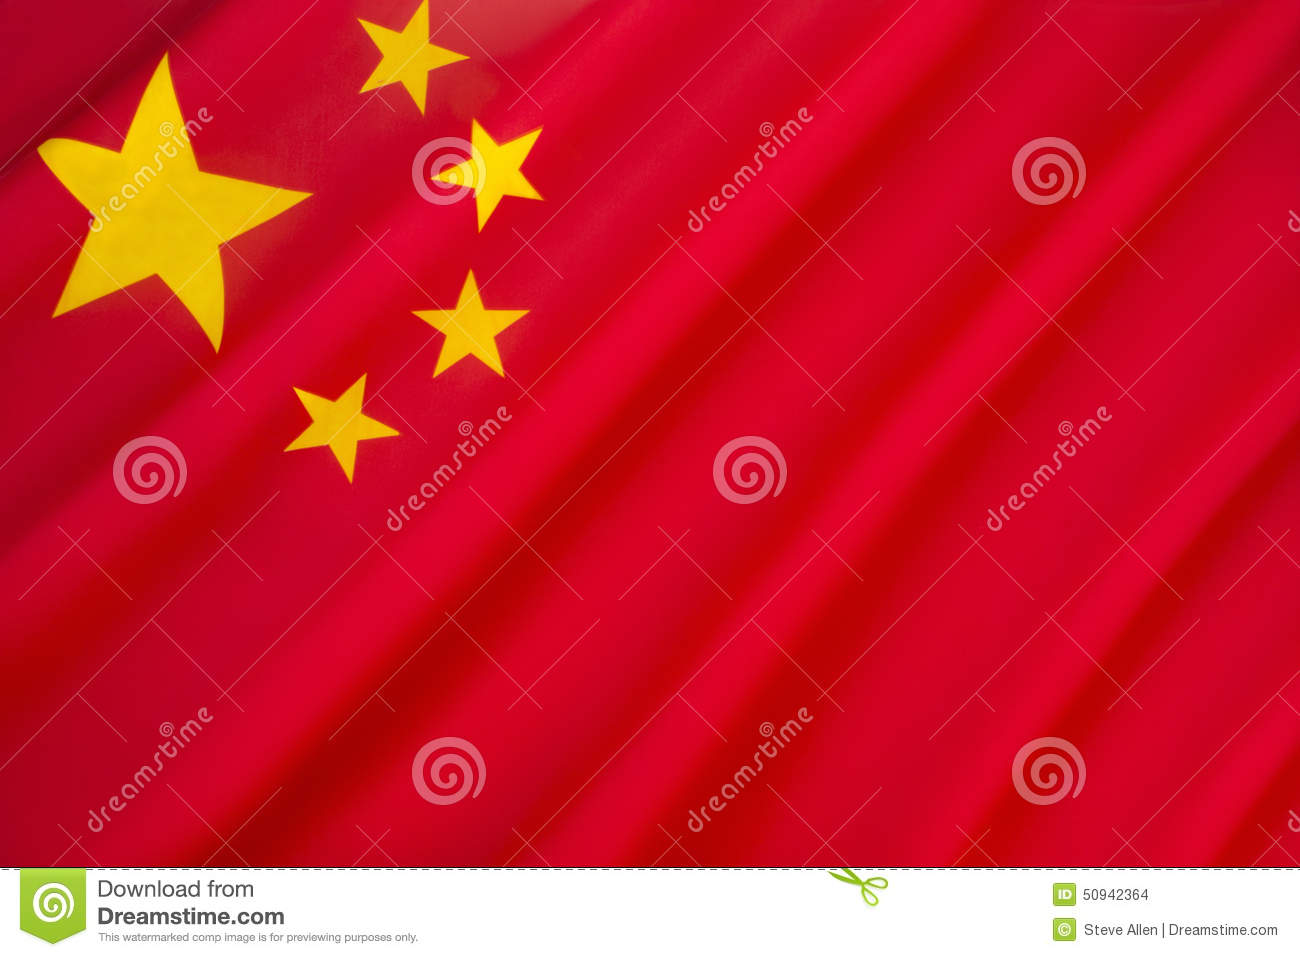 the peoples republic of china essay (author's name) (professor) (subject) (date) confucianism in the people's republic of china confucianism is a philosophy in china that seeks inspiration from th.